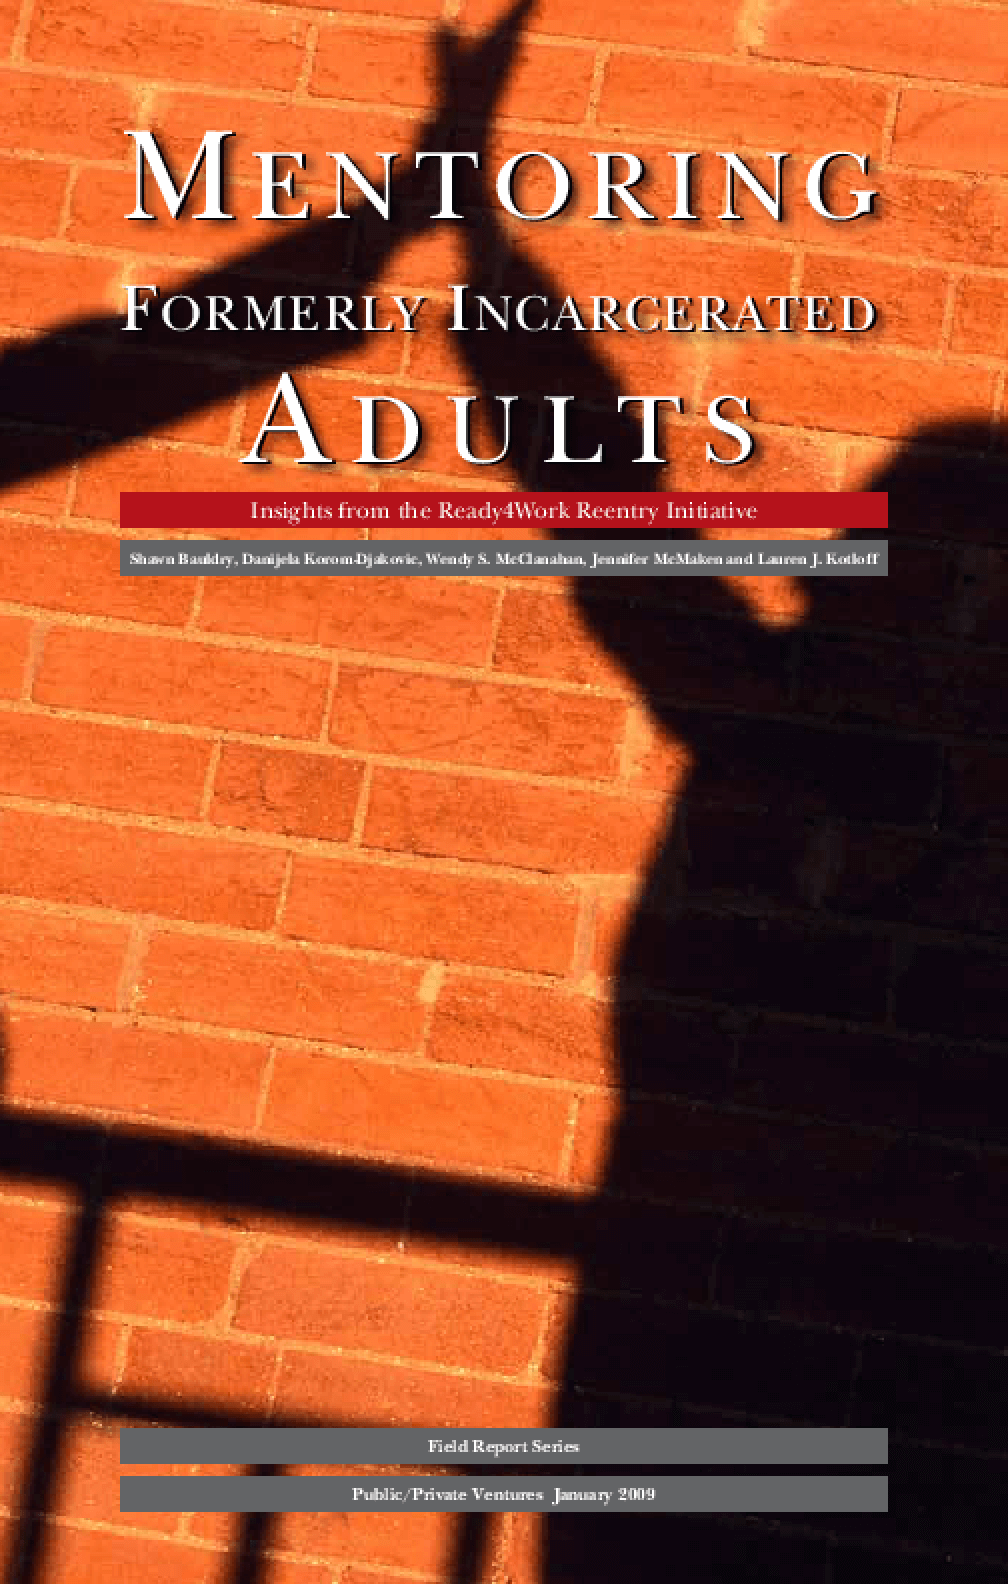 Mentoring Formerly Incarcerated Adults: Insights from the Ready4Work Reentry Initiative